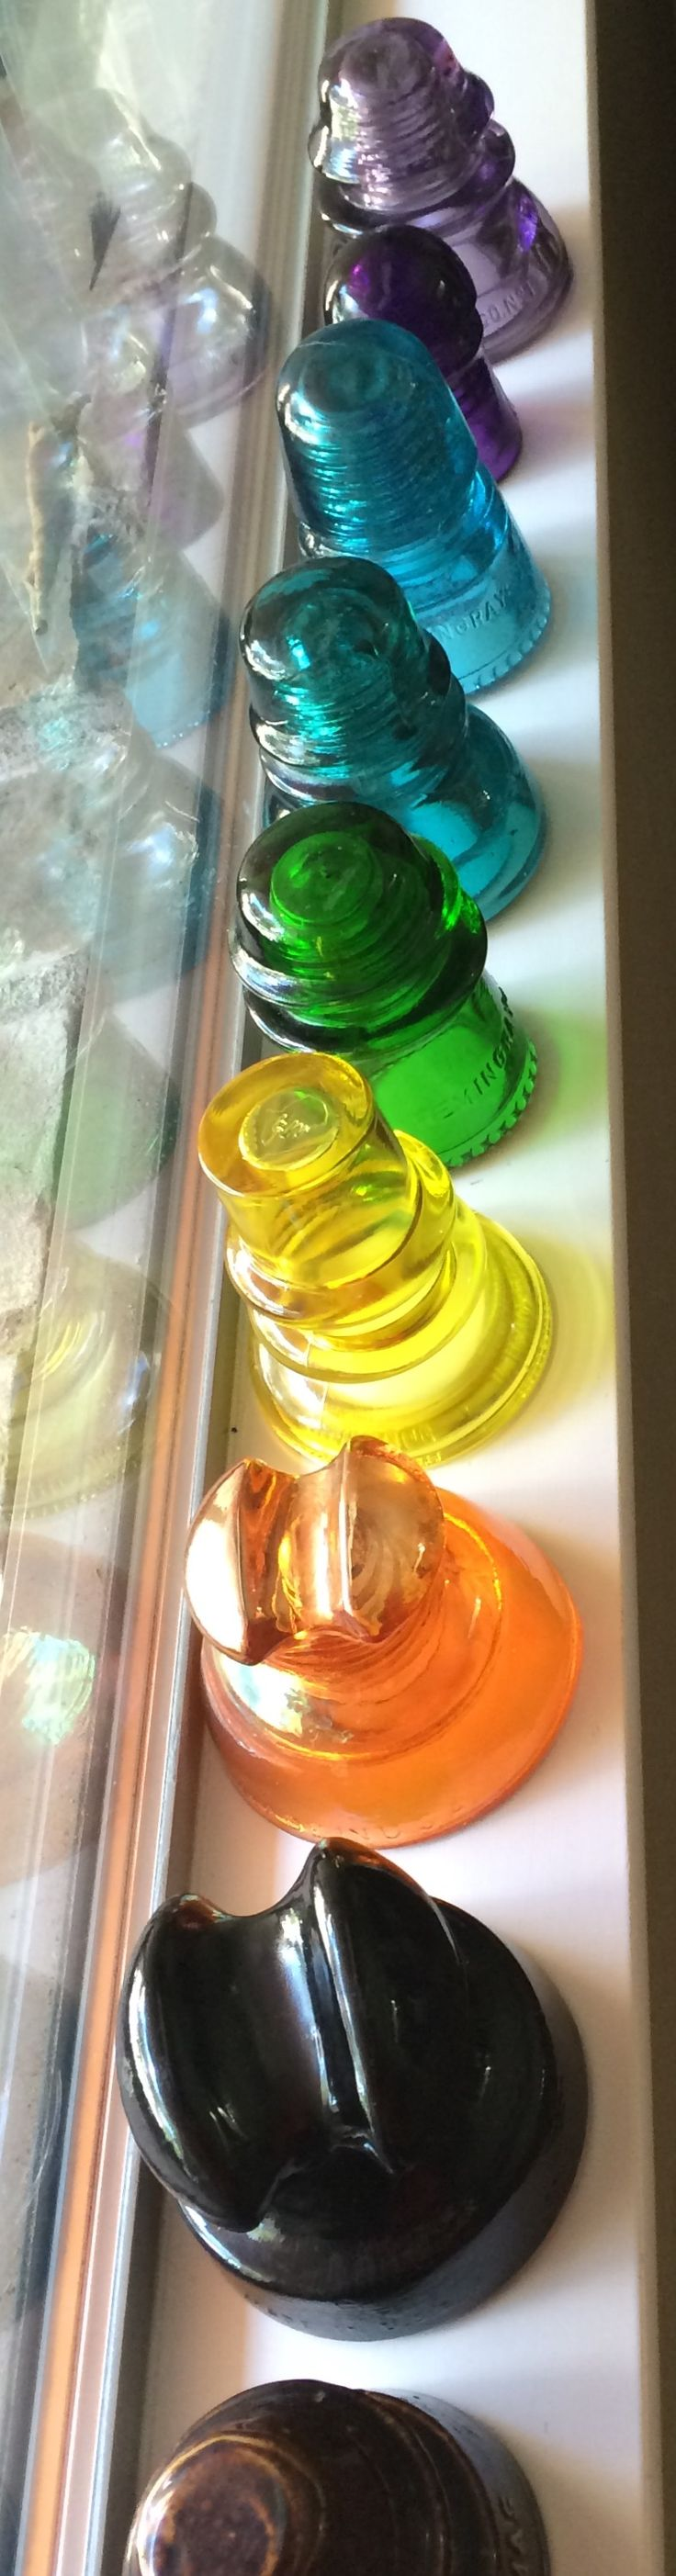 Girly Girl Collection: Glass Insulators from 1800-1900's telegraph/telephone/electrical poles